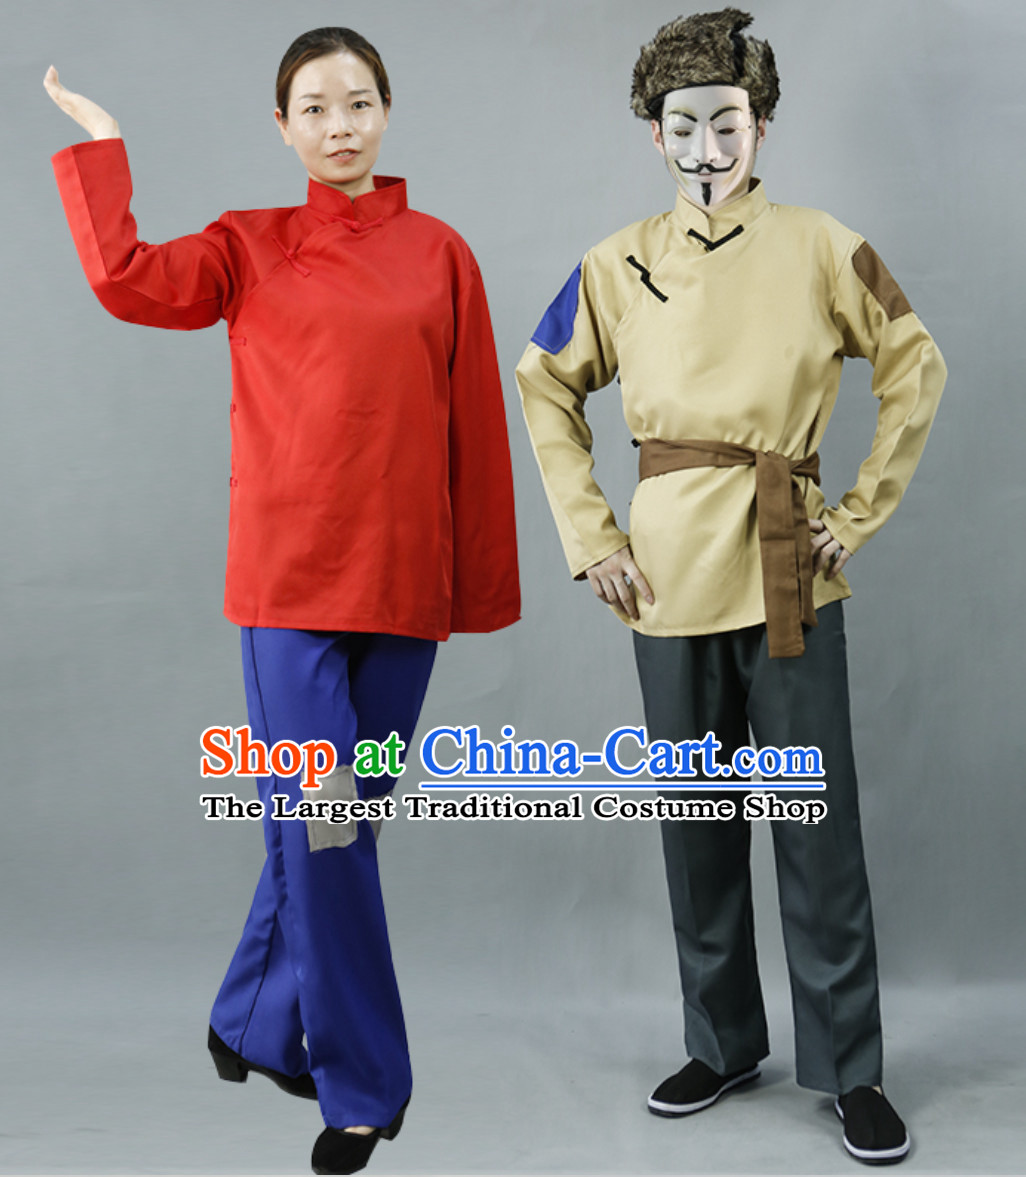 Traditional Chinese Poor People Clothes Costume Farmer Costumes Chinese Civilian Costumes for Men and Women